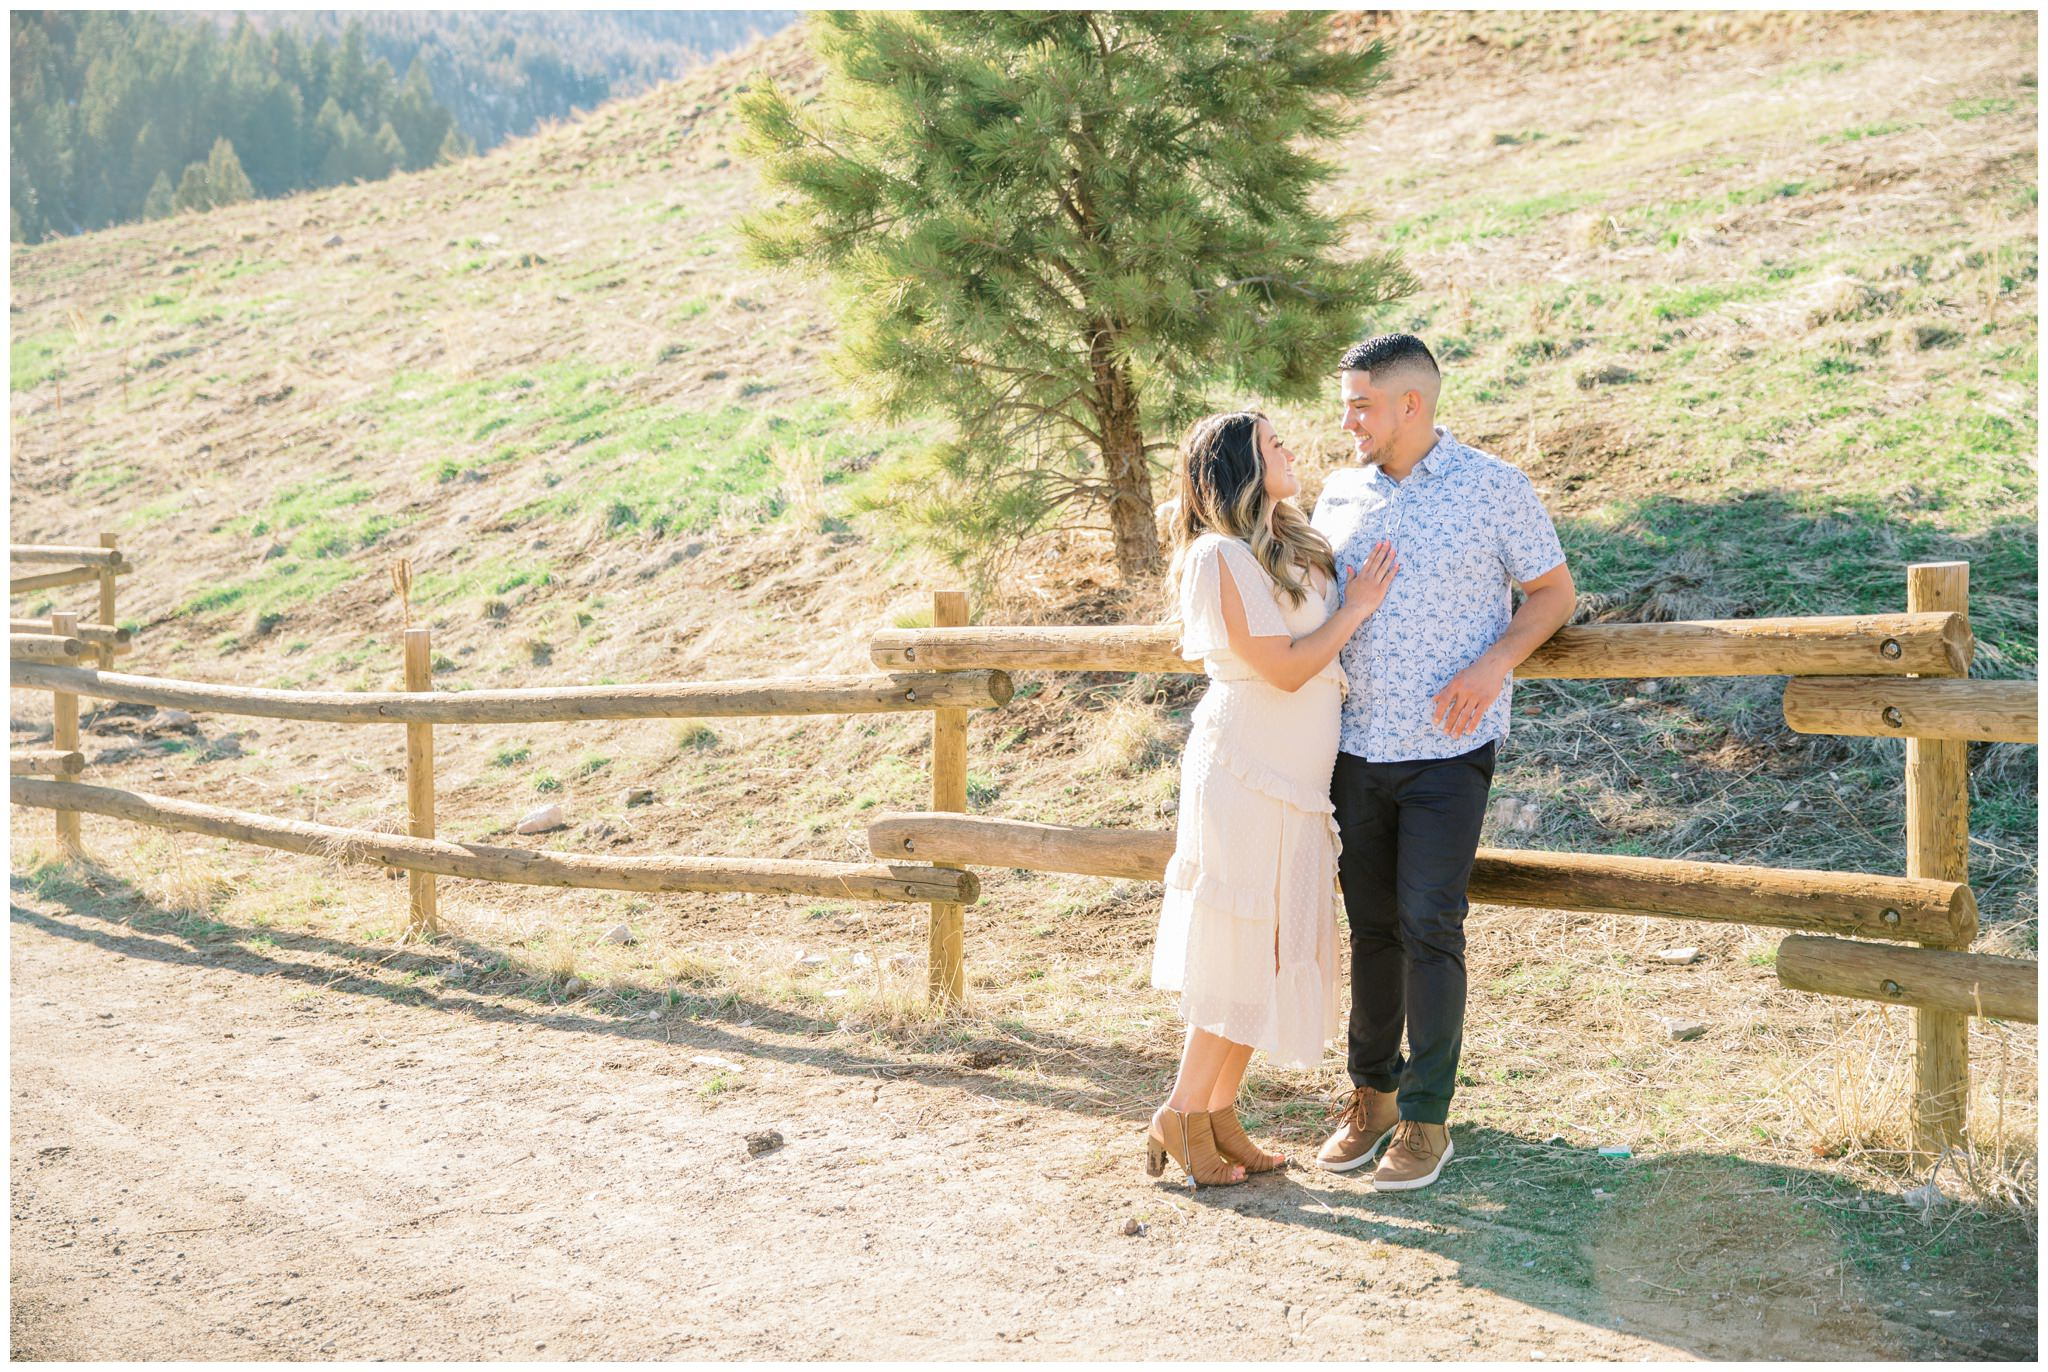 Bride and groom leaning against a wooden fence in the mountains for their engagement pictures in Utah